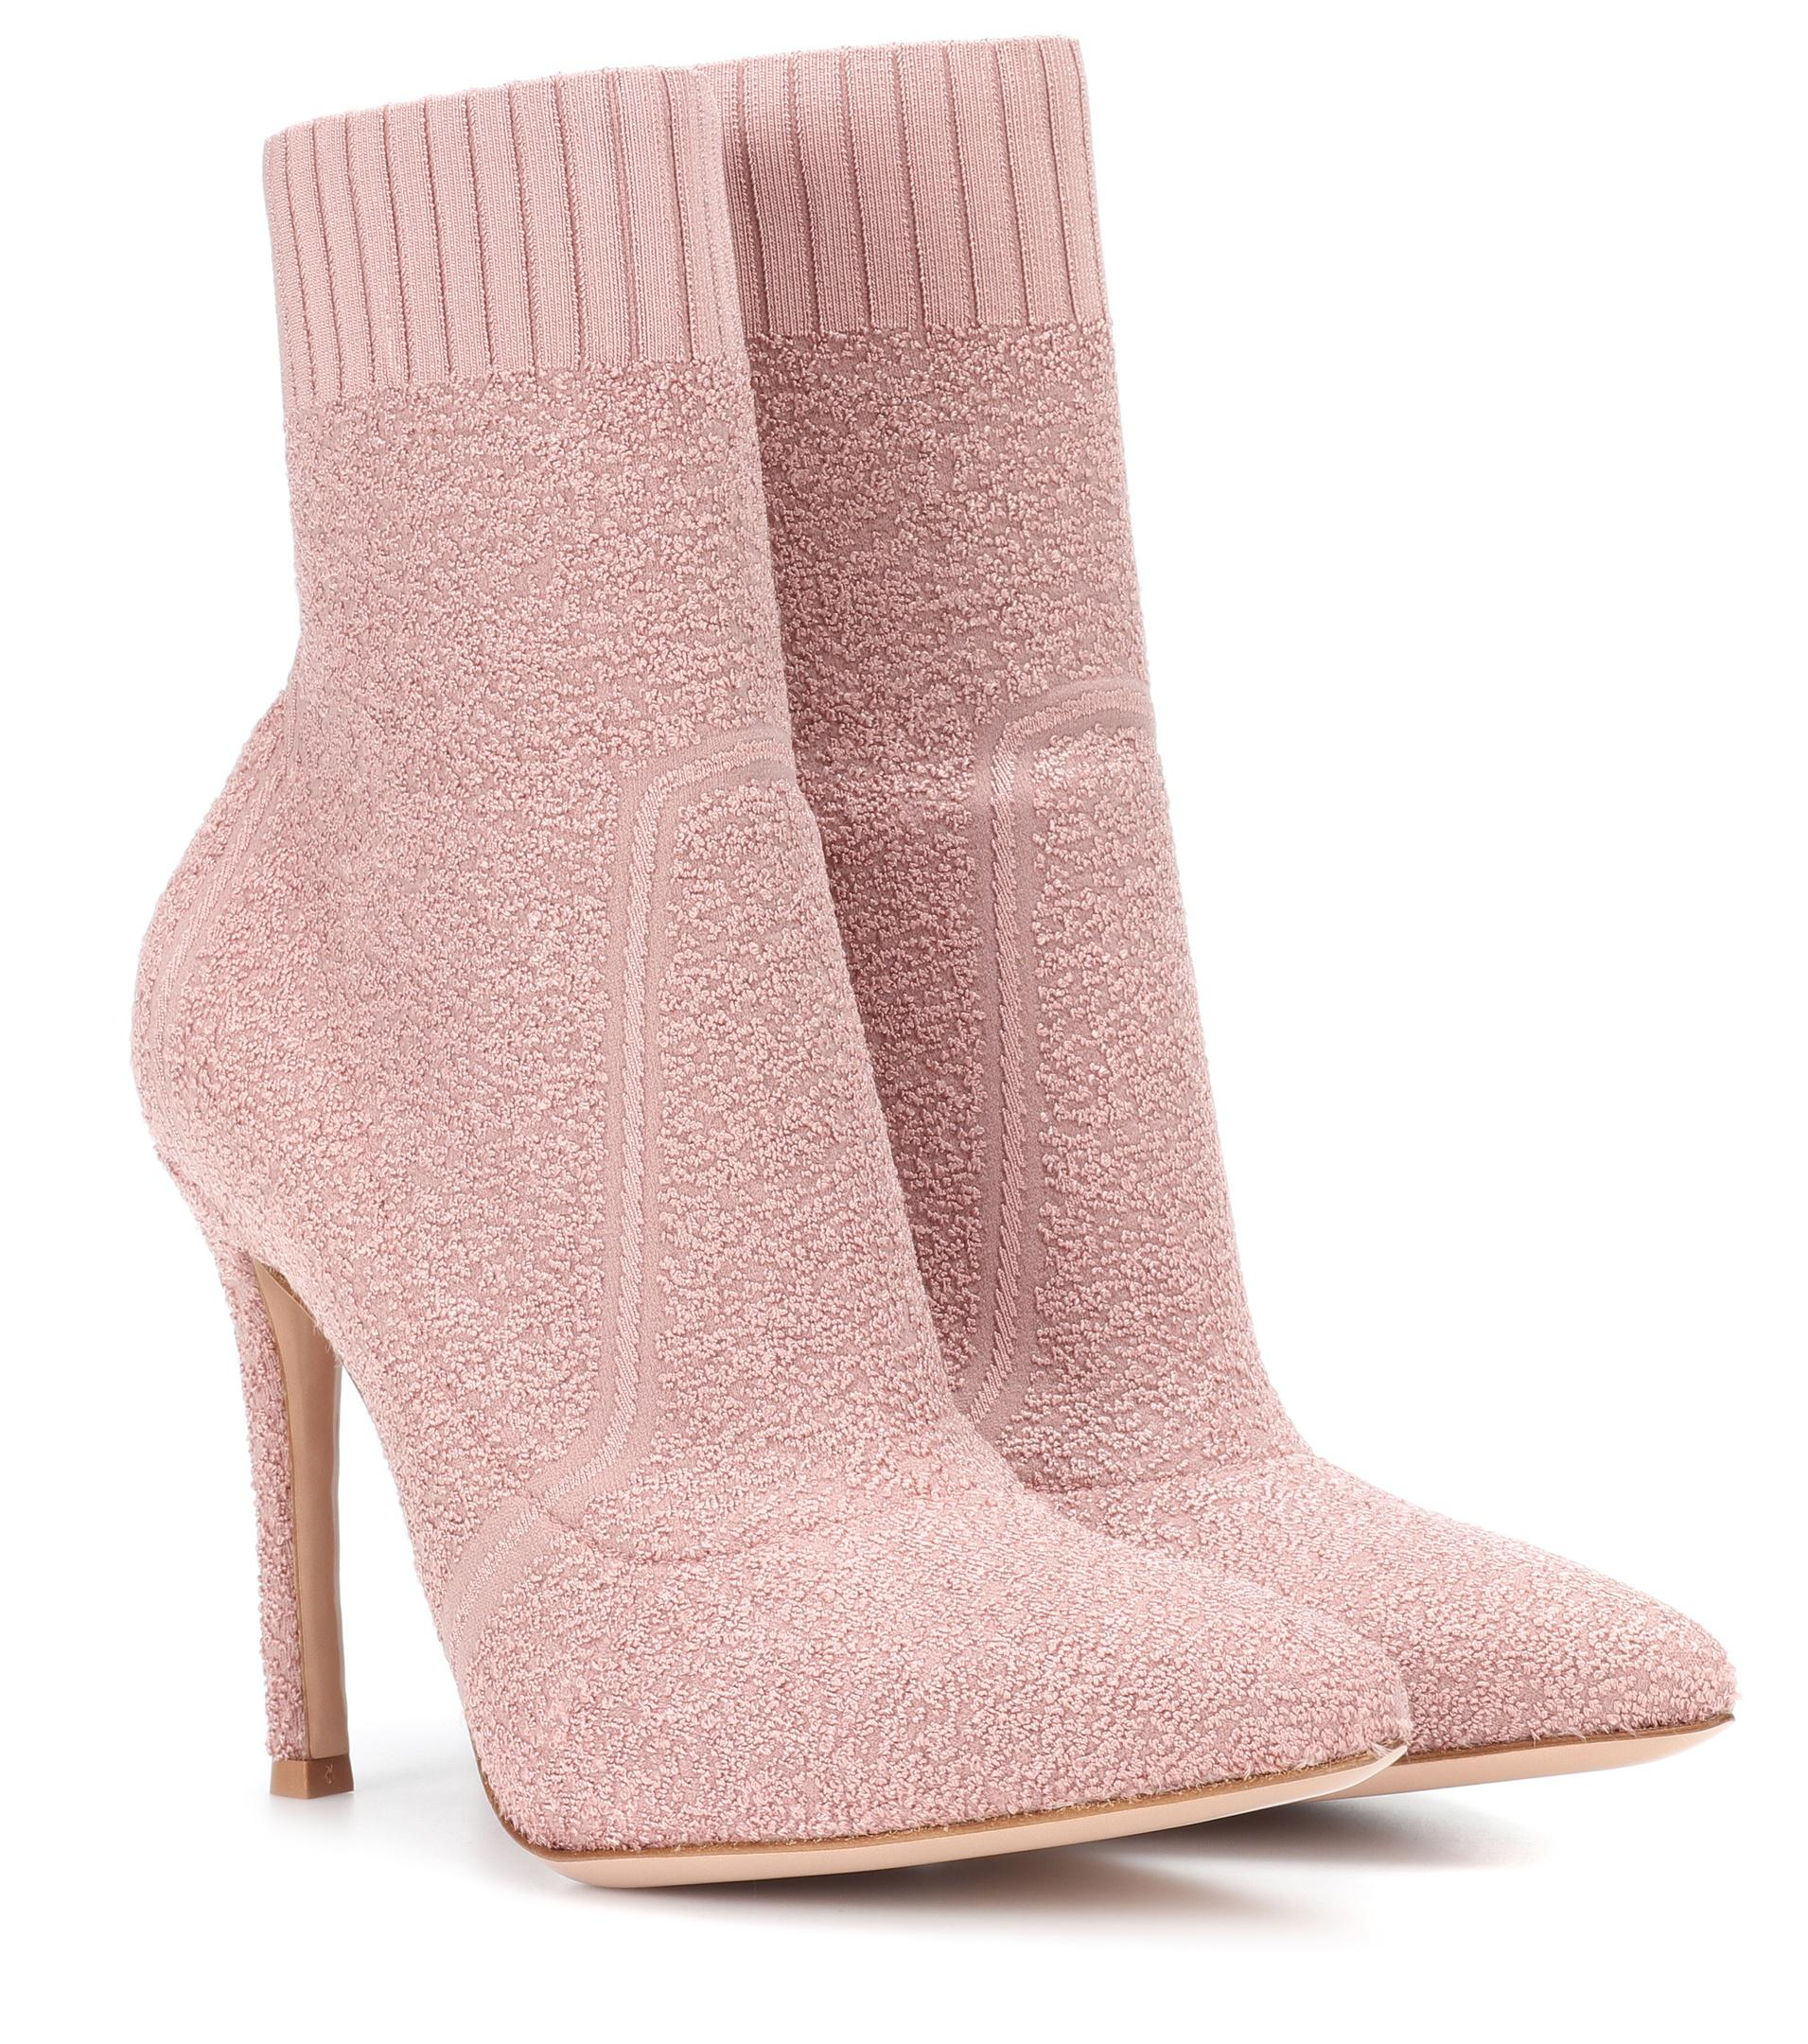 Gianvito Rossi Fiona 105 bouclé ankle boots KHkhXEio